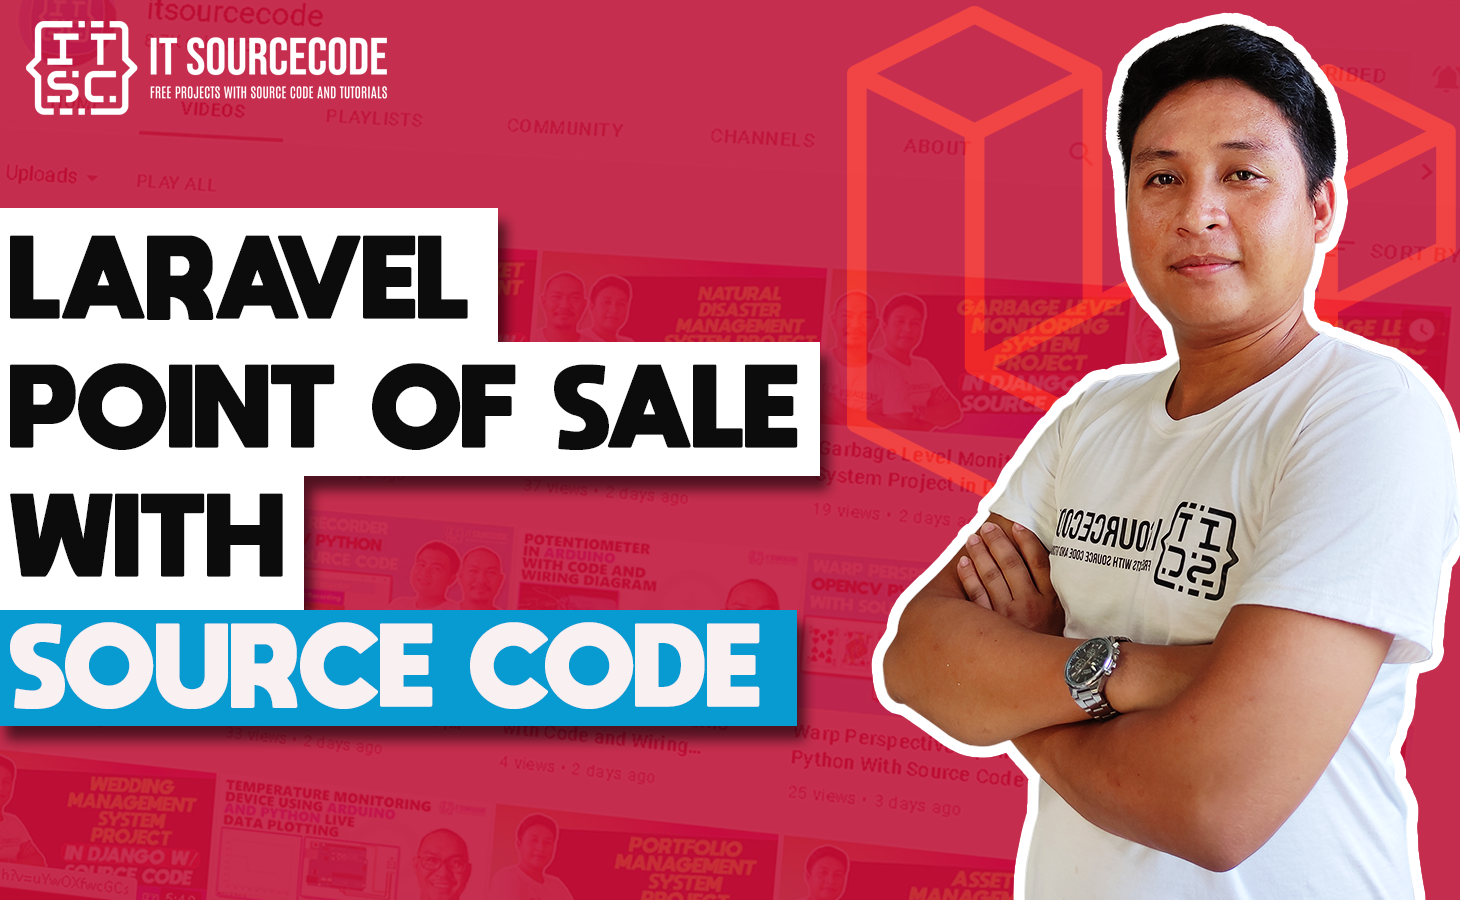 Laravel Point of Sale Source Code